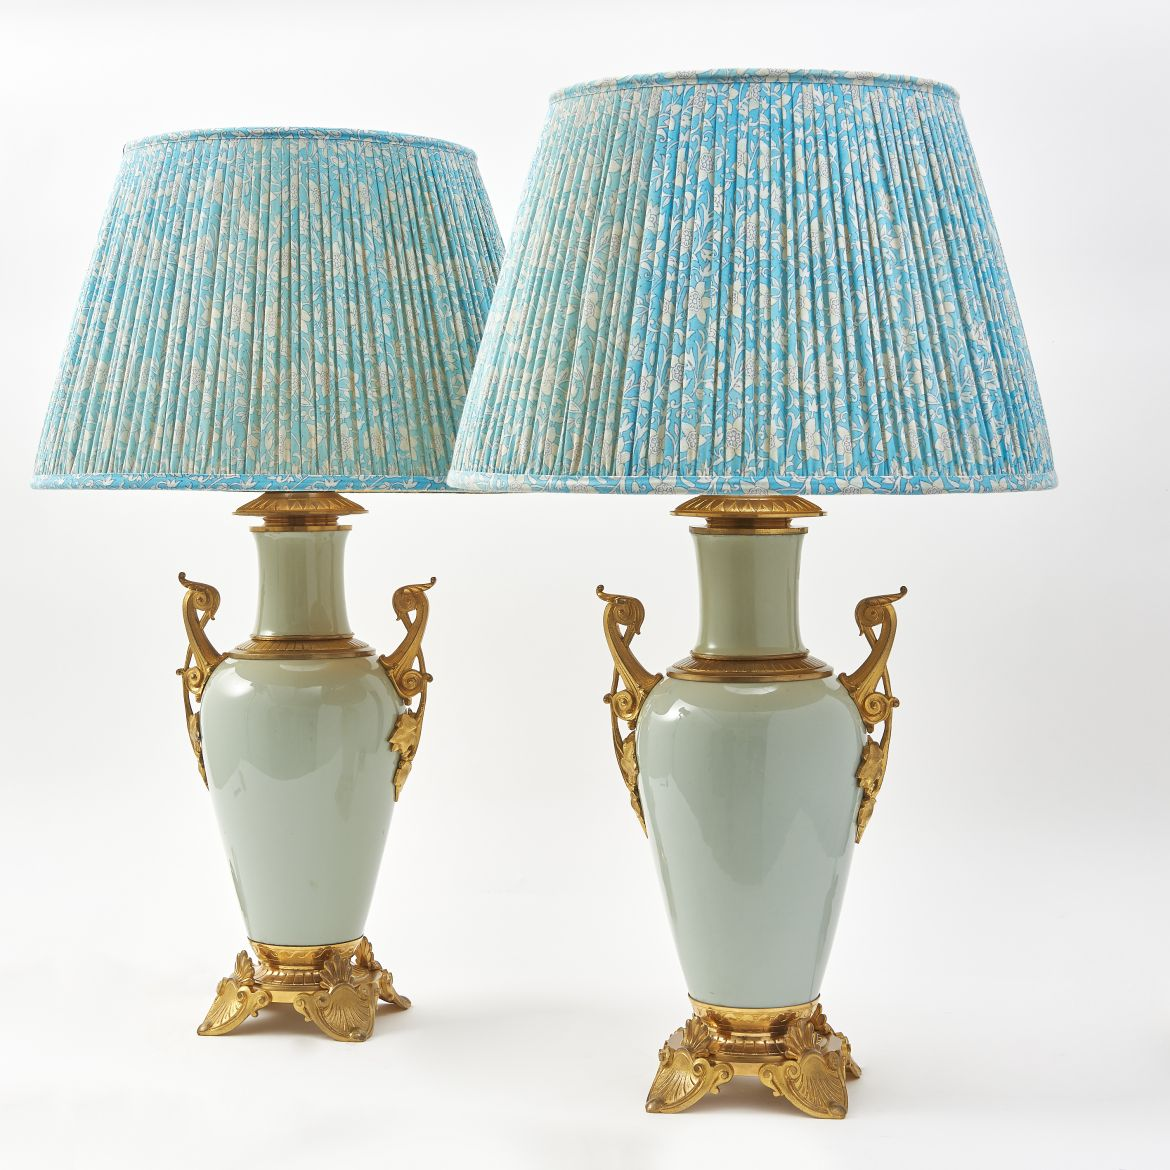 Chinese Celadon Vases With Egyptian Revivalist Style Mounts Wired As Lamps